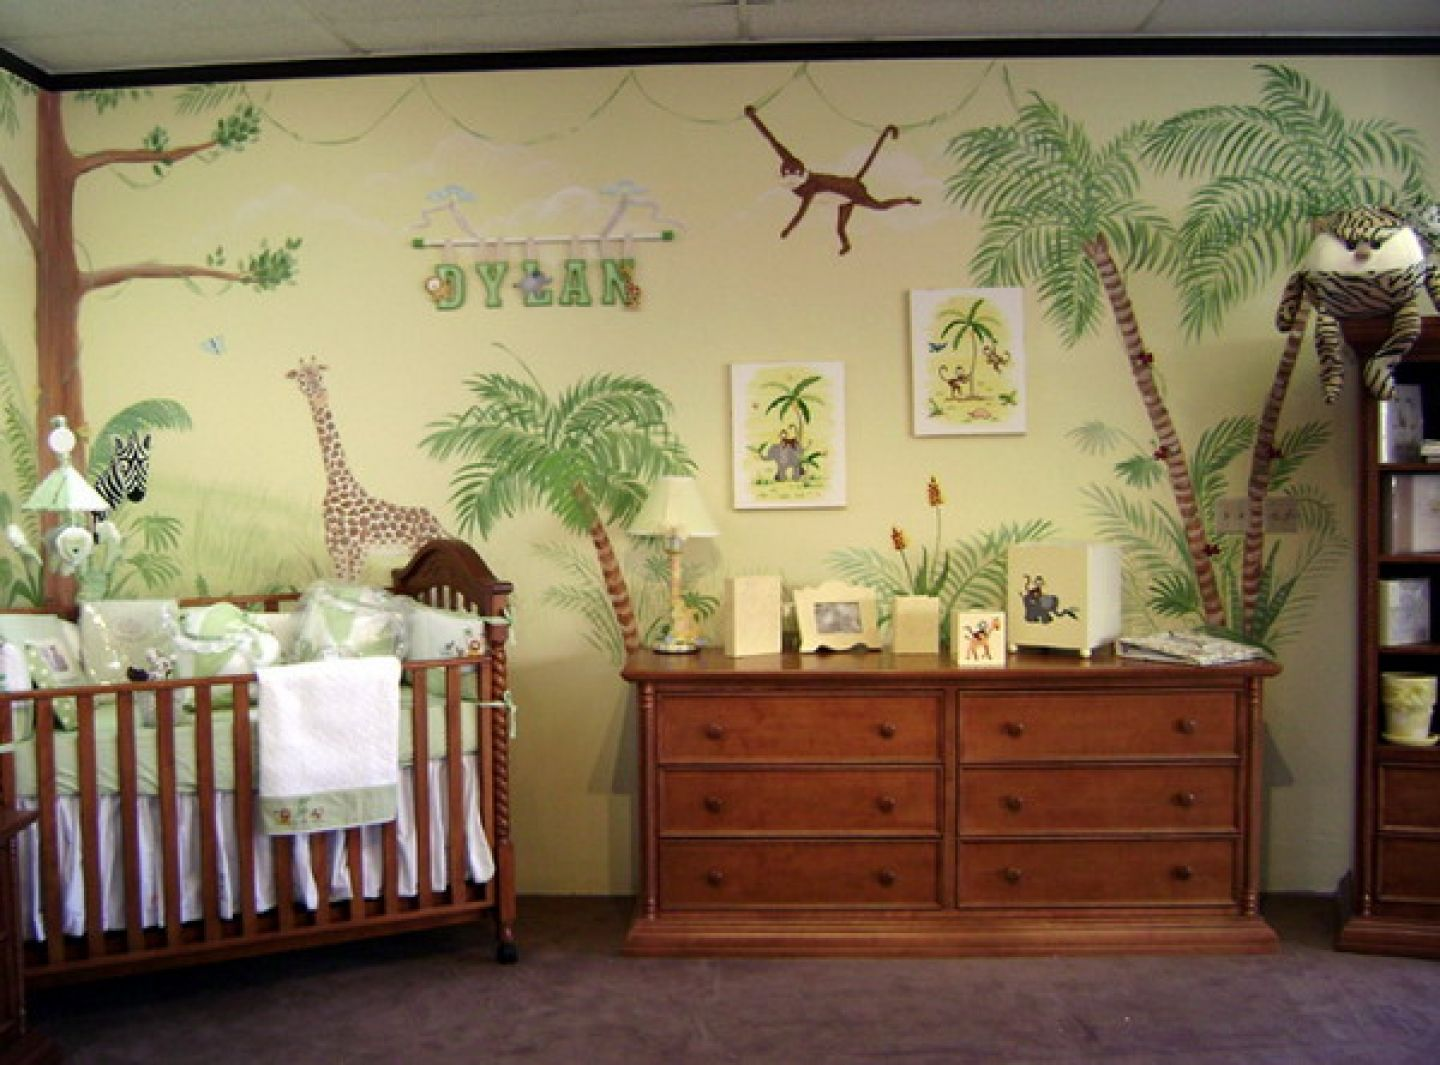 Bedroom:Traditional Baby Nursery Wall Murals Decoration Africa ...